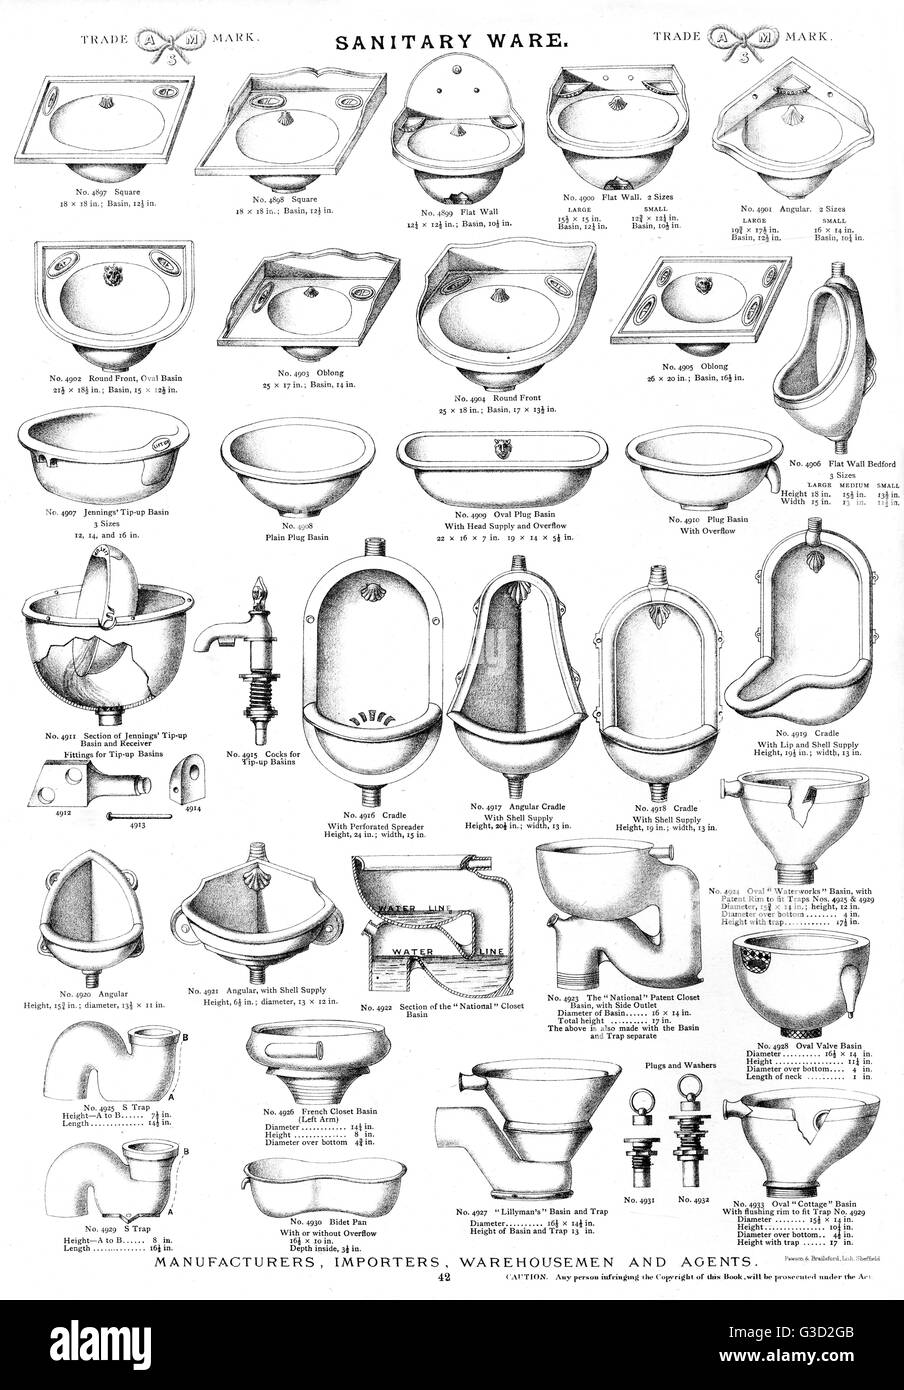 Sanitary ware, Plate 42, showing wash basins, urinals and toilet bowls in a range of styles.      Date: circa 1880s - Stock Image